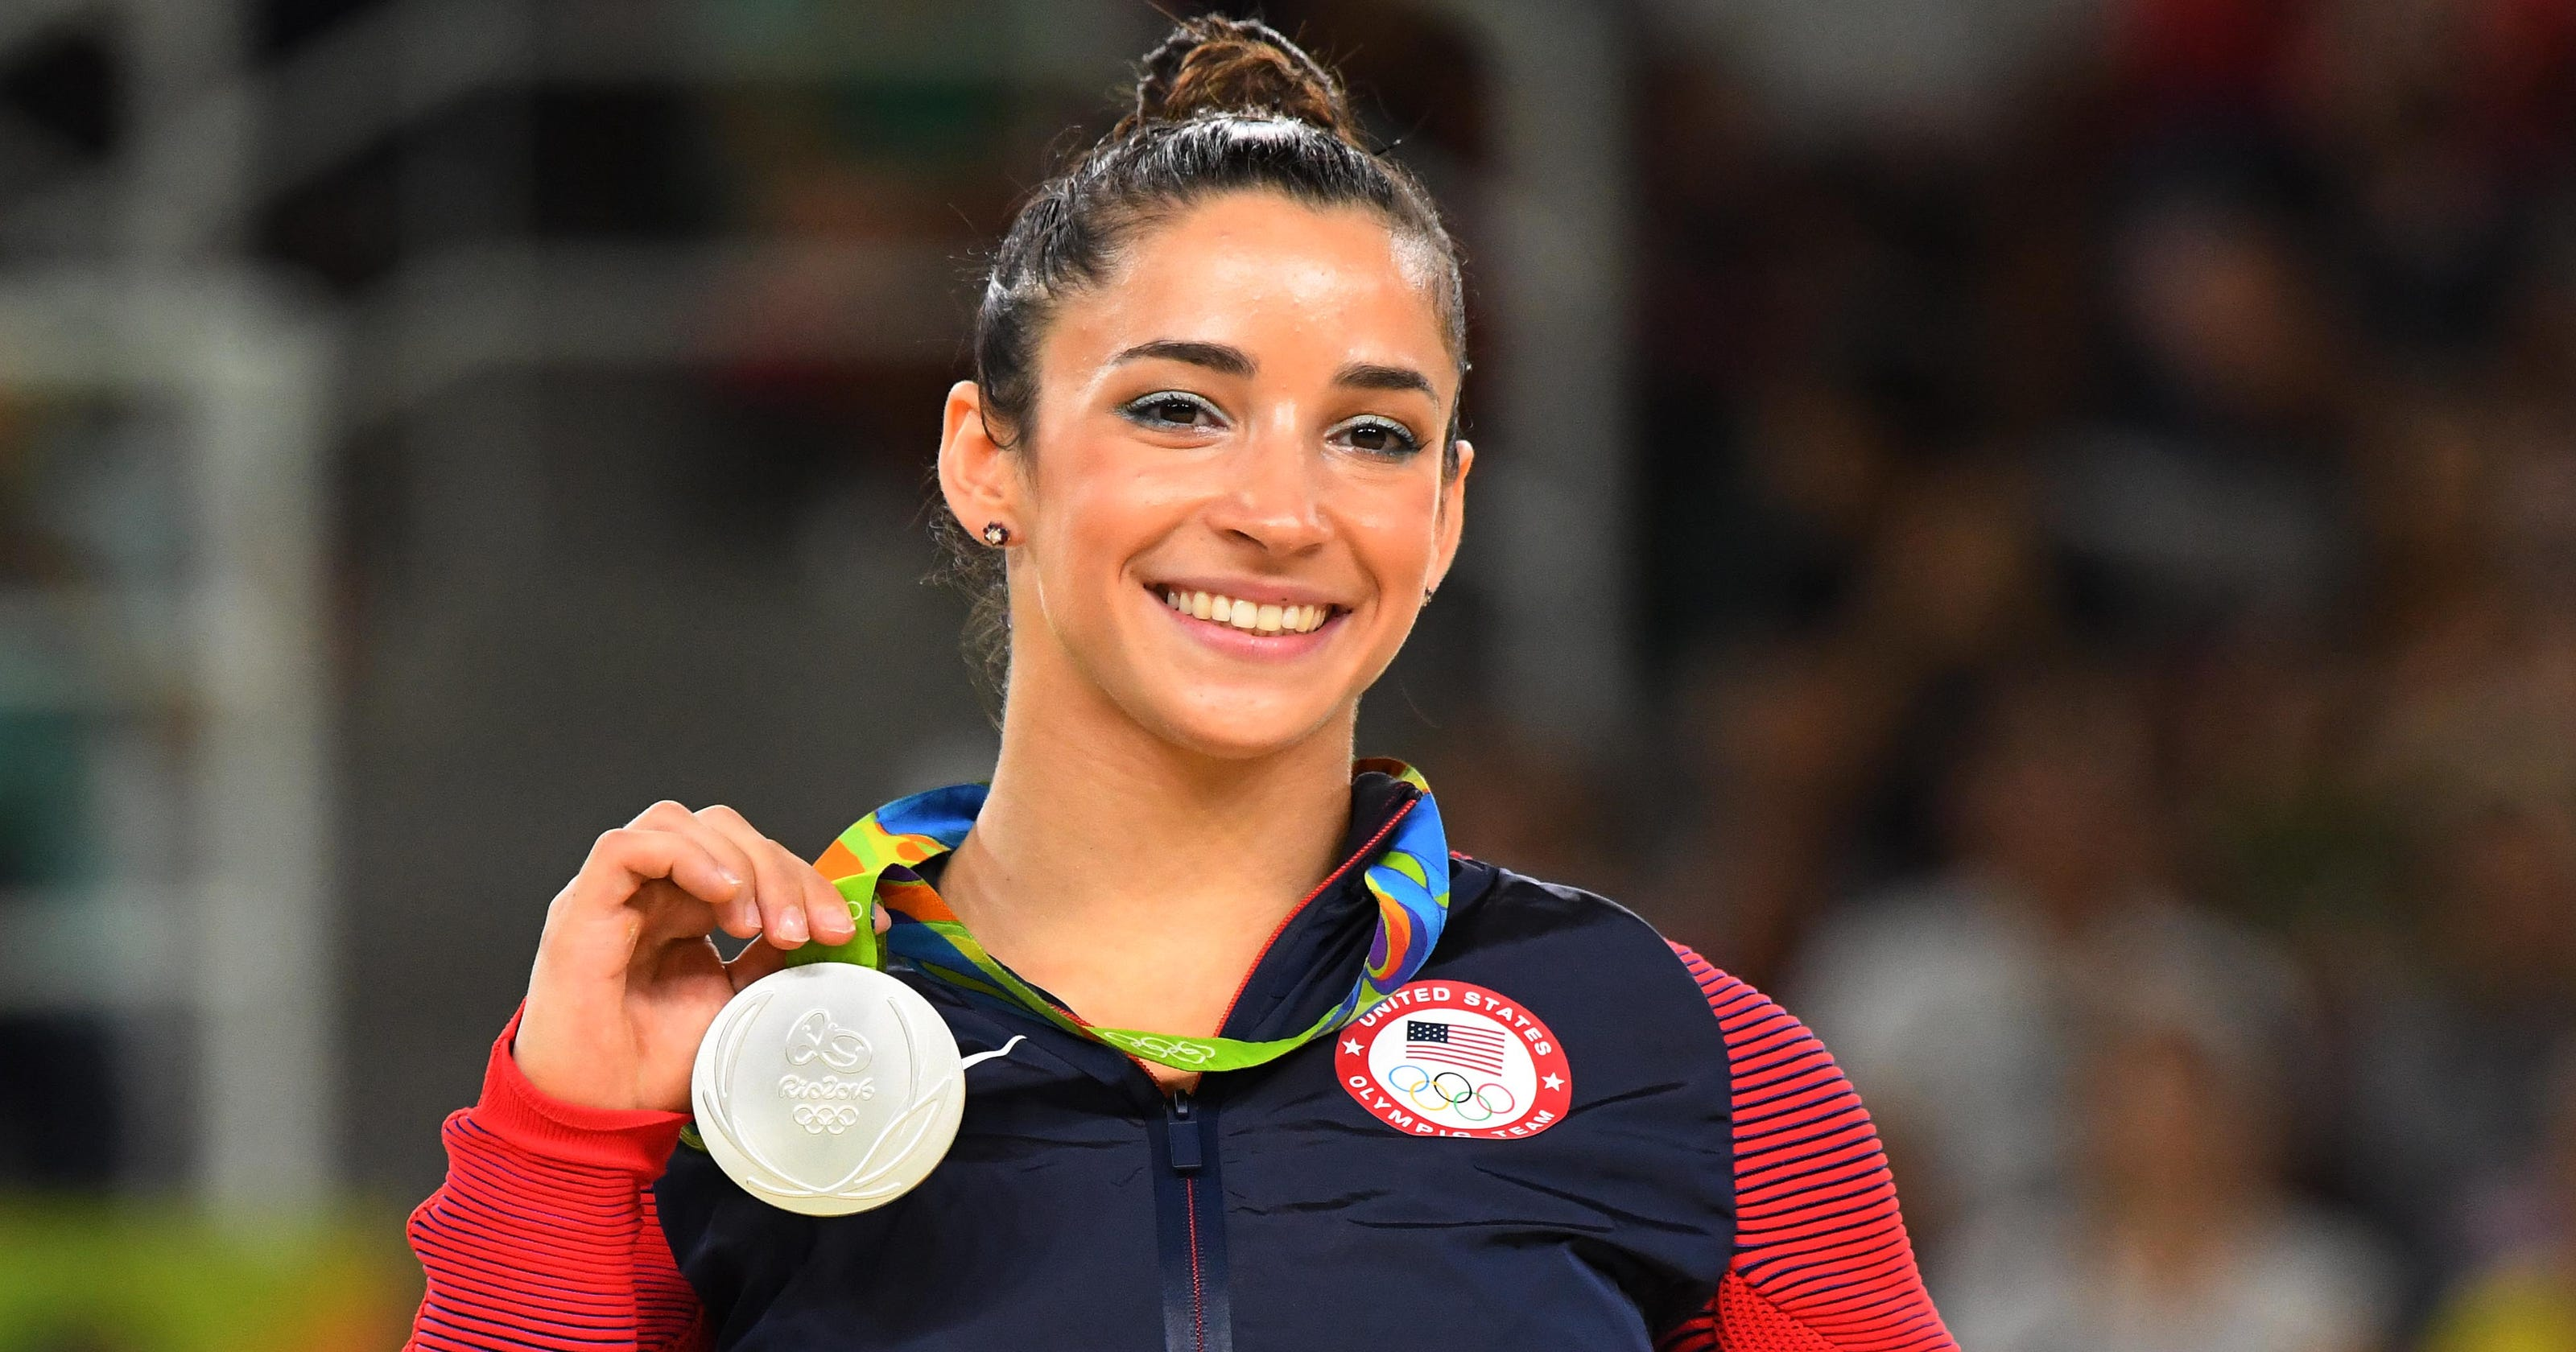 Aly Raisman says she was criticized for posing nude in